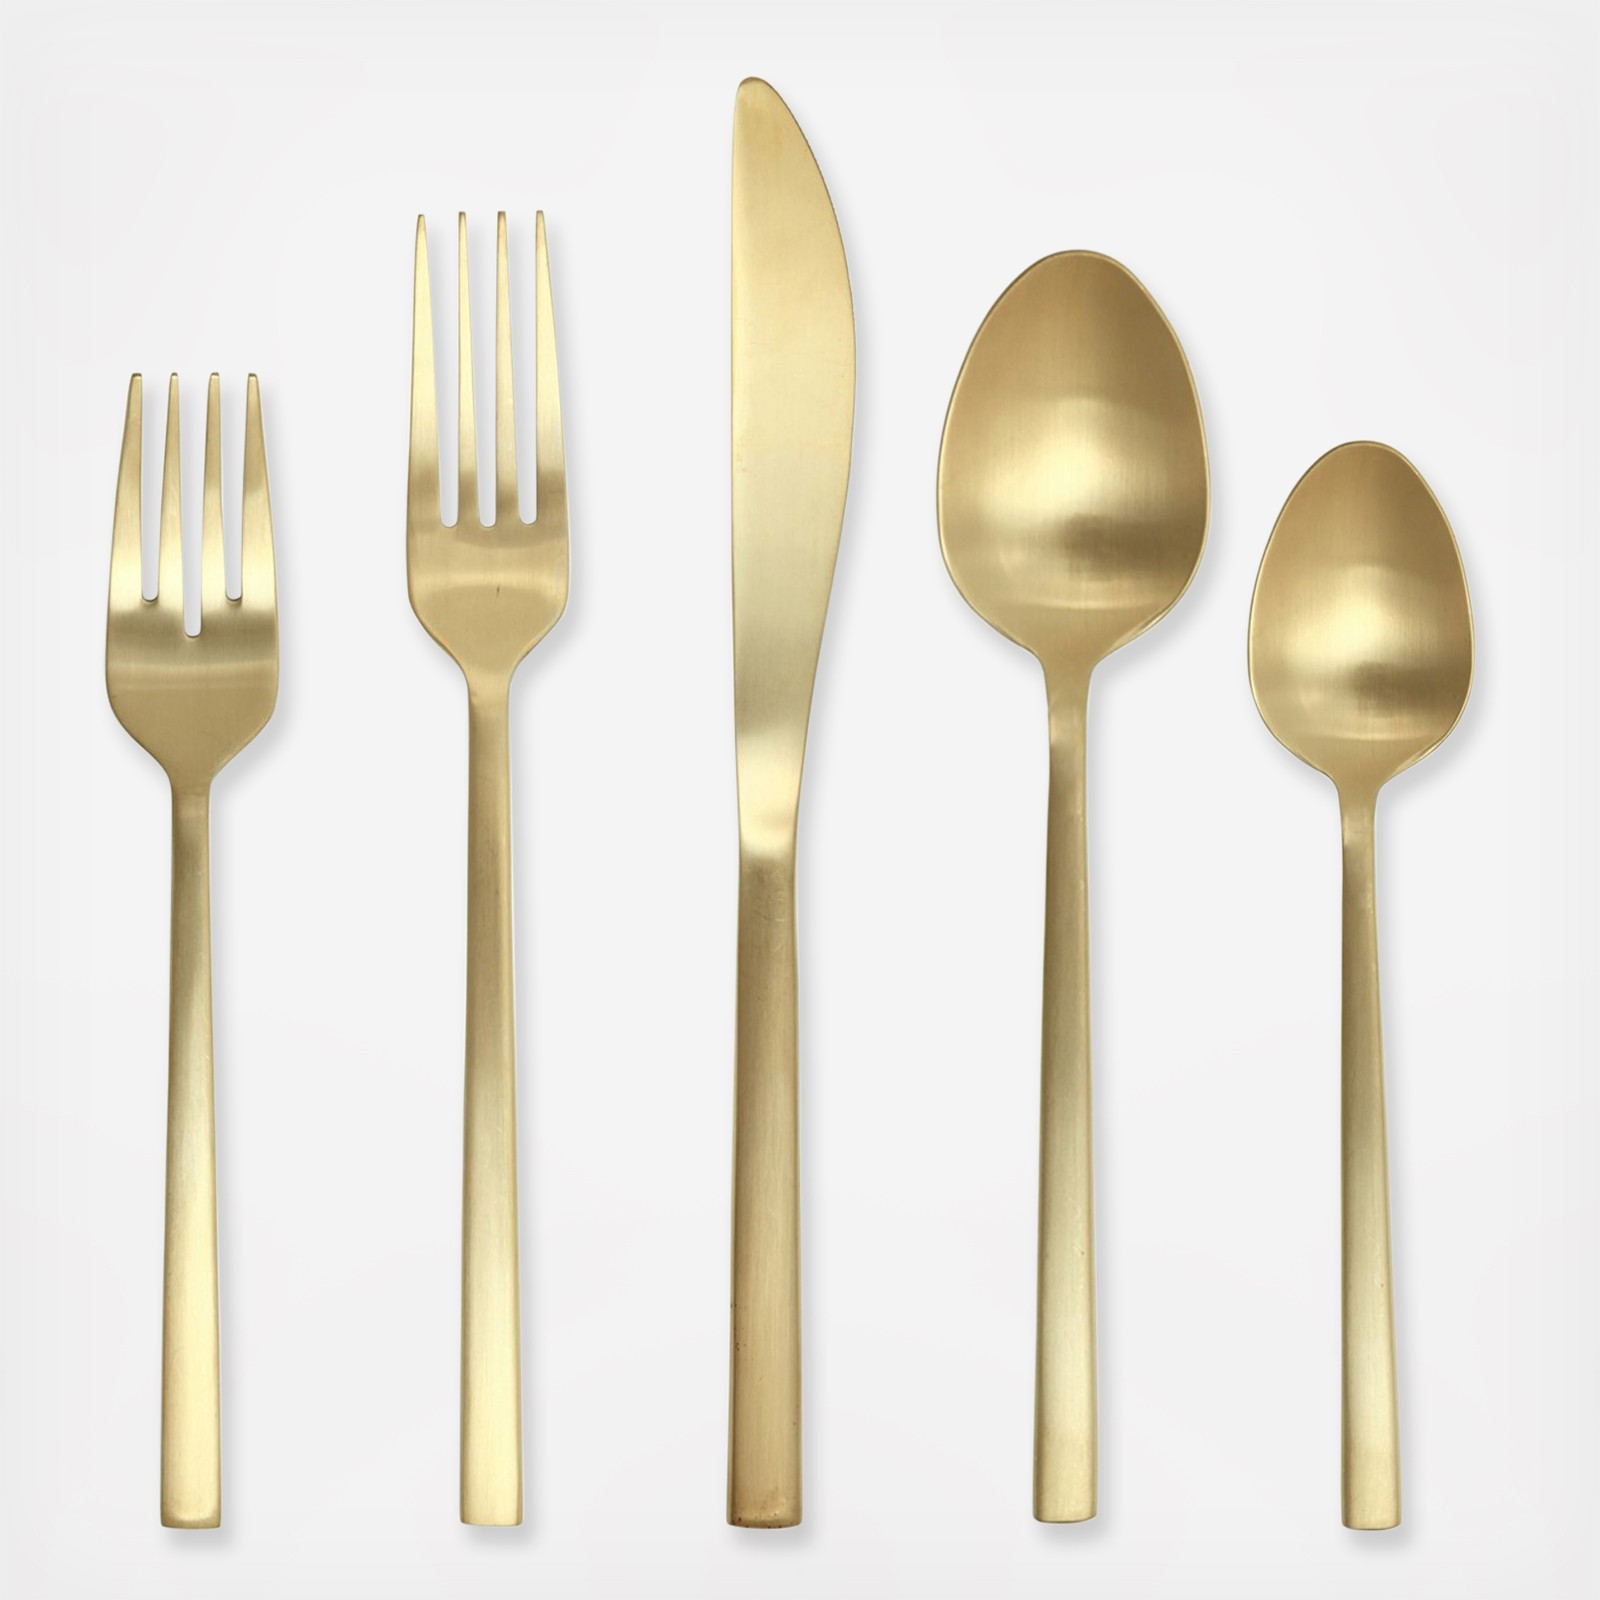 Excellent gold flatware for kitchen and dining sets ideas with gold flatware set